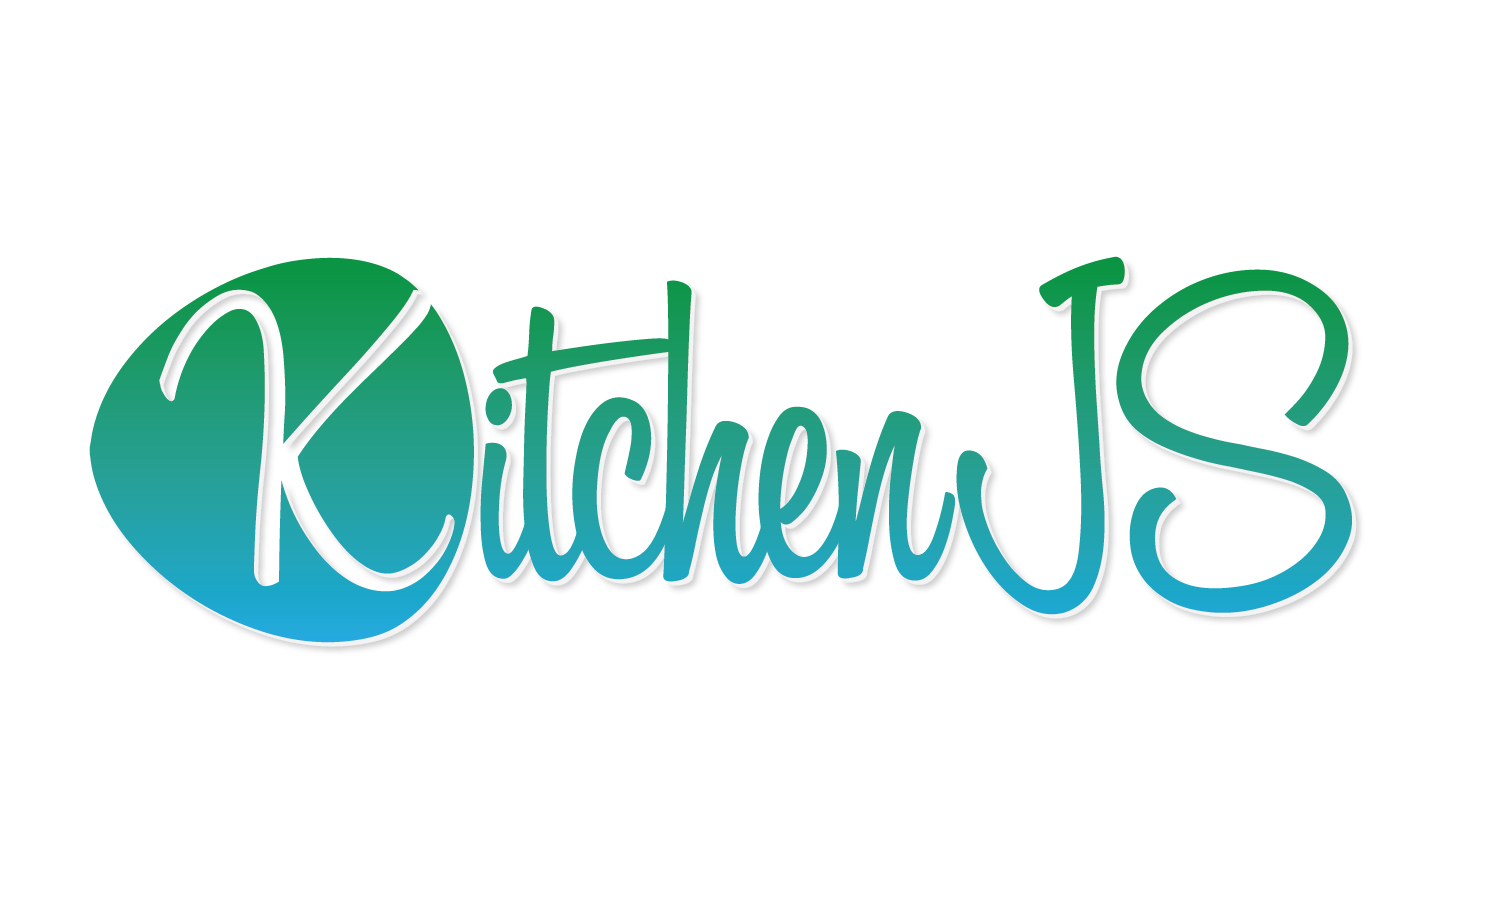 KITCHENJS